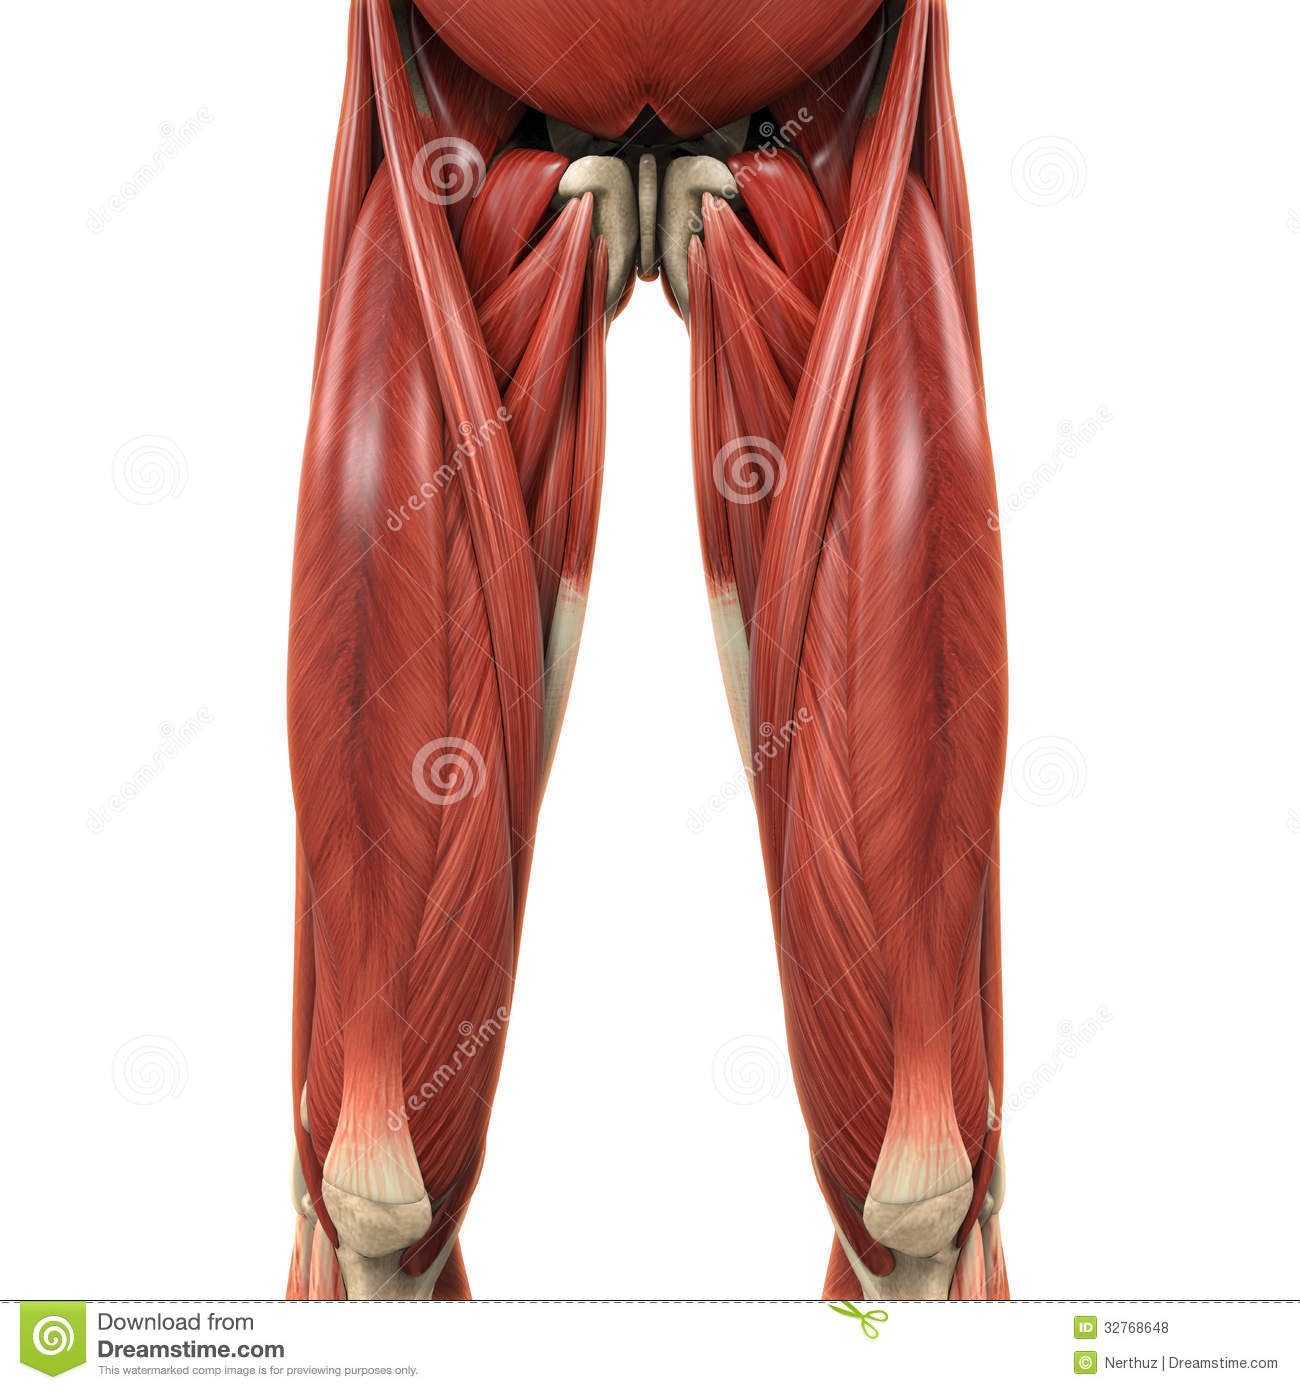 upper leg muscles diagram 2001 chevy silverado 1500 tail light wiring of rectus muscle latissimus dorsi